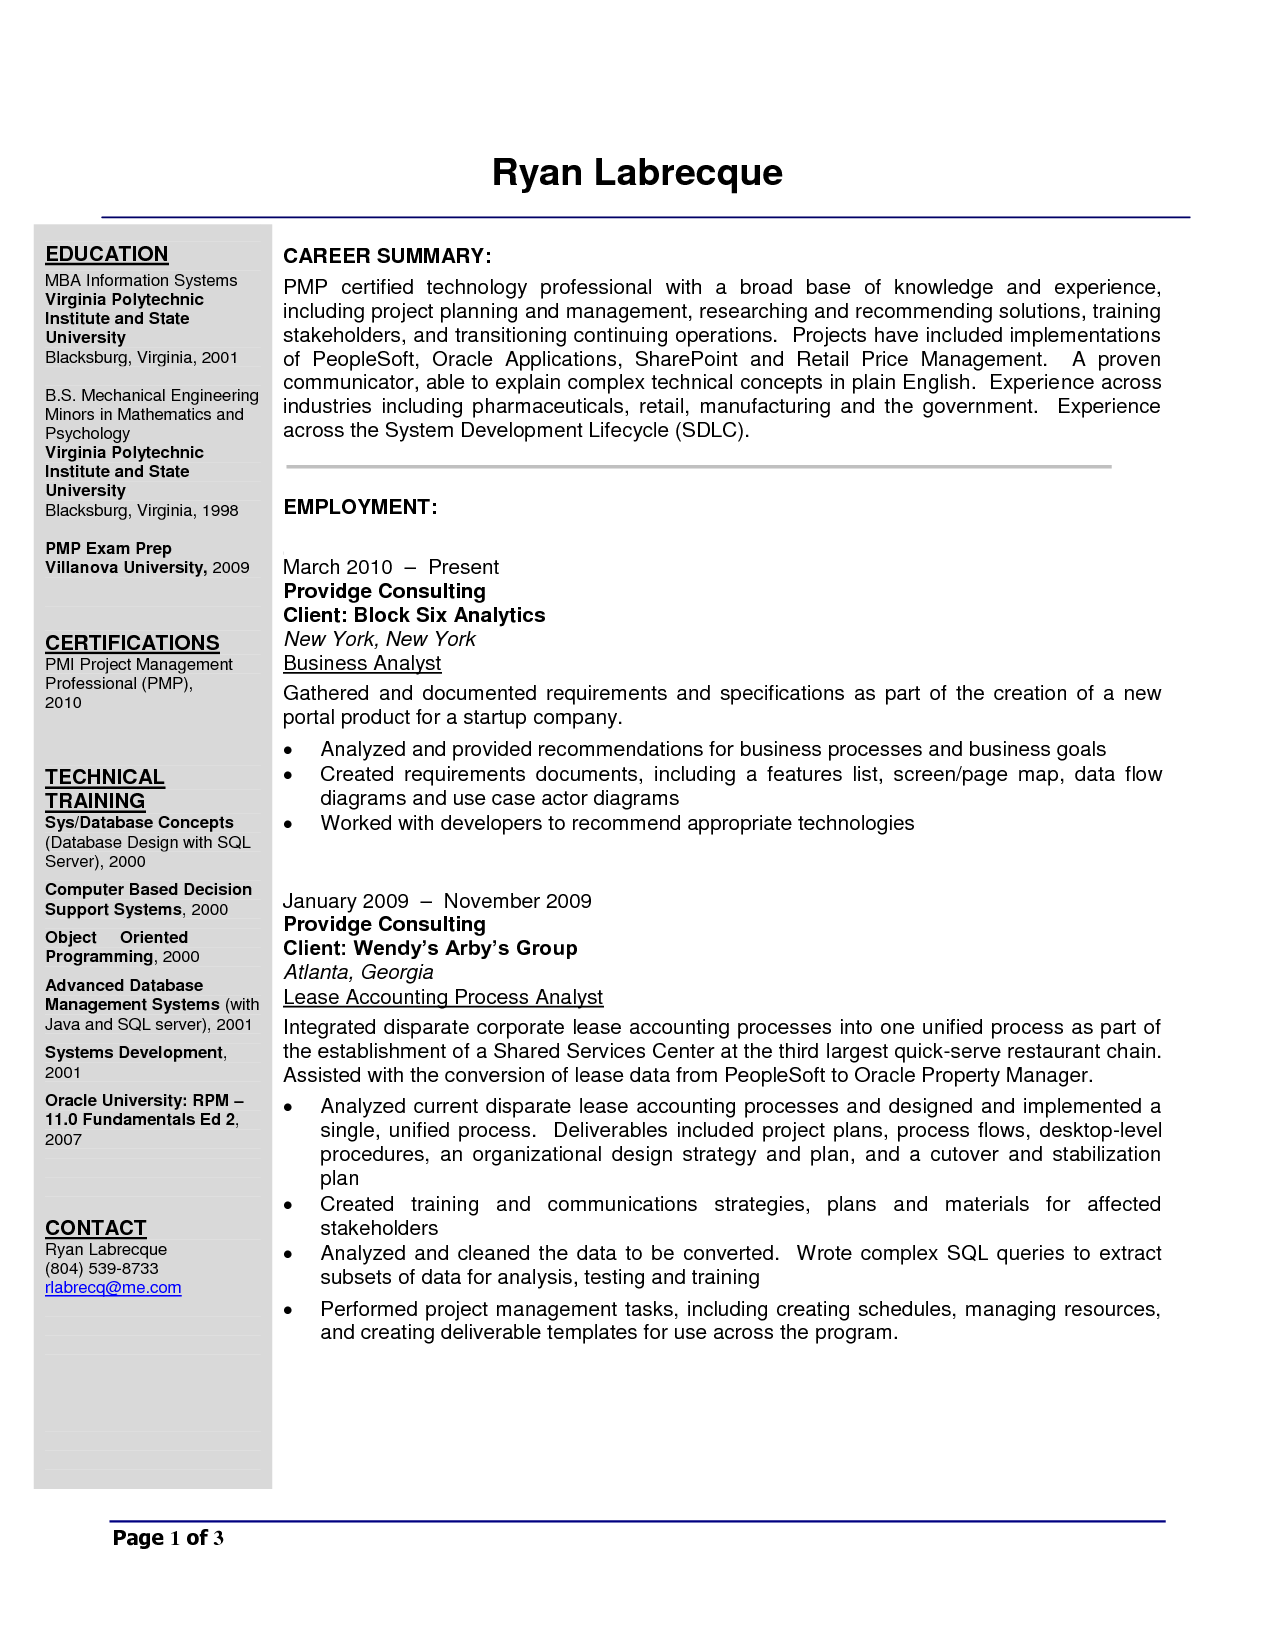 sap pp functional consultant resume 100 images essays